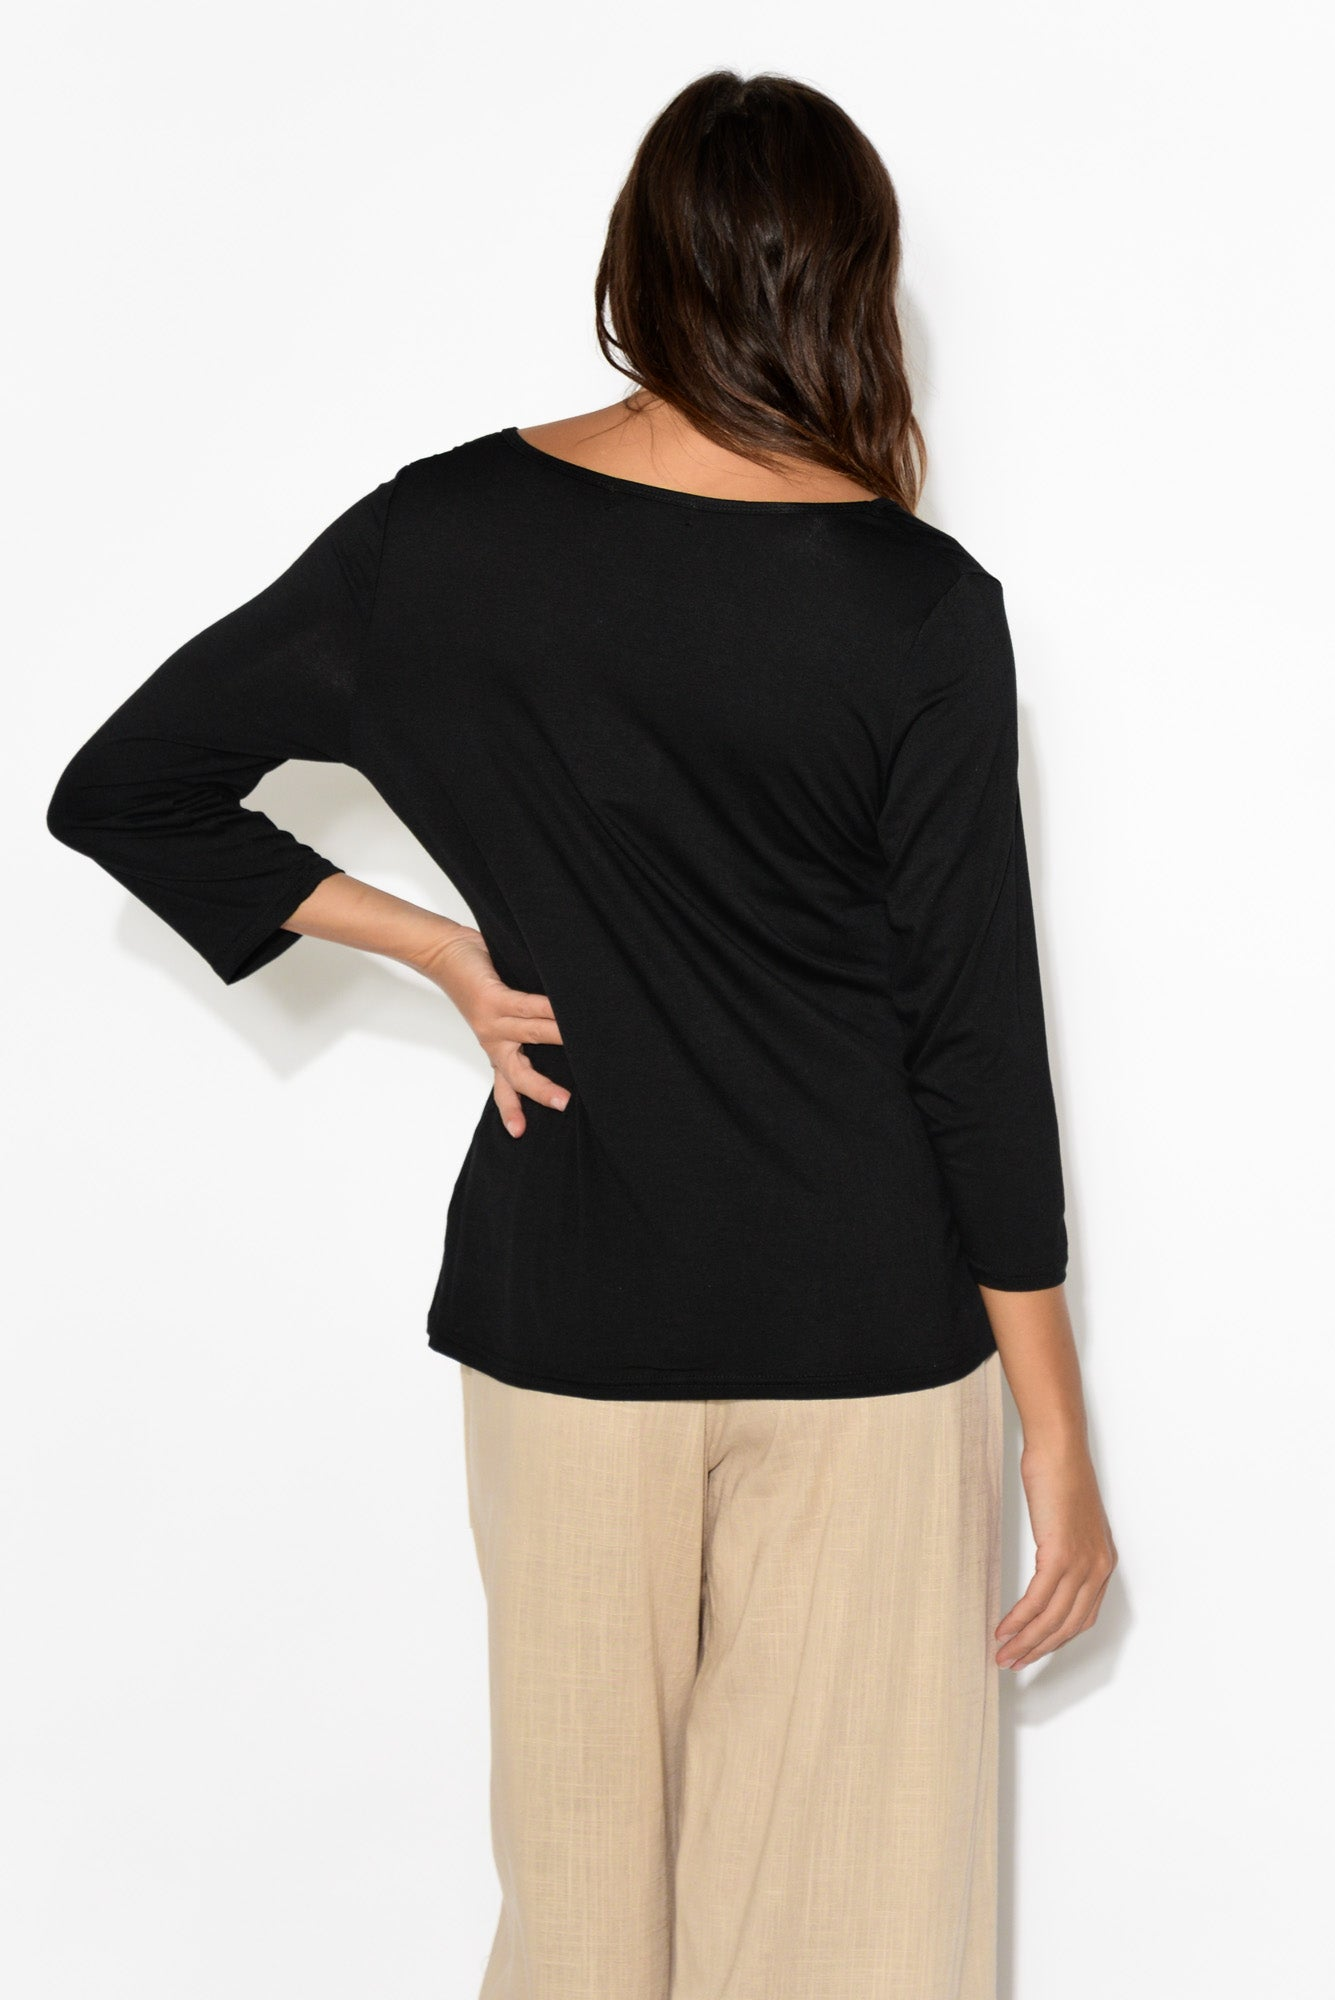 Joanna Black 3/4 Sleeve Top